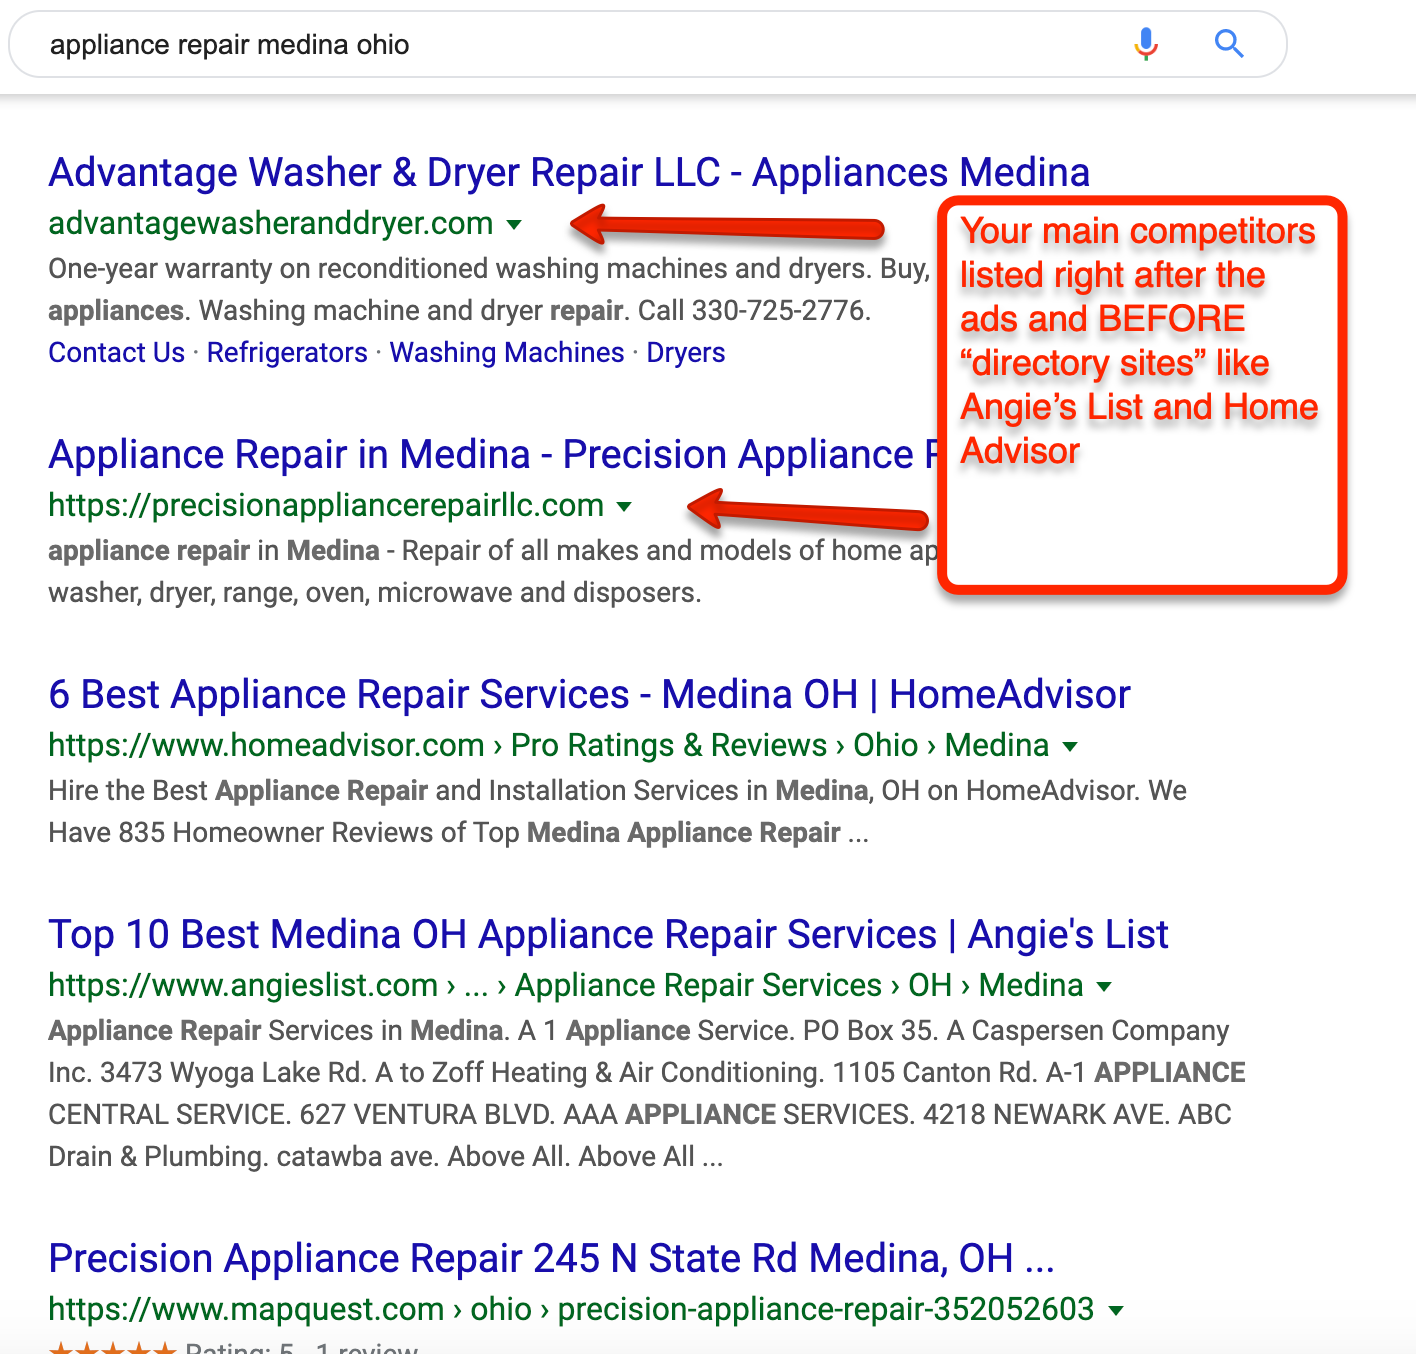 Use the keywords to search in Google to find your top online competitors for those terms.